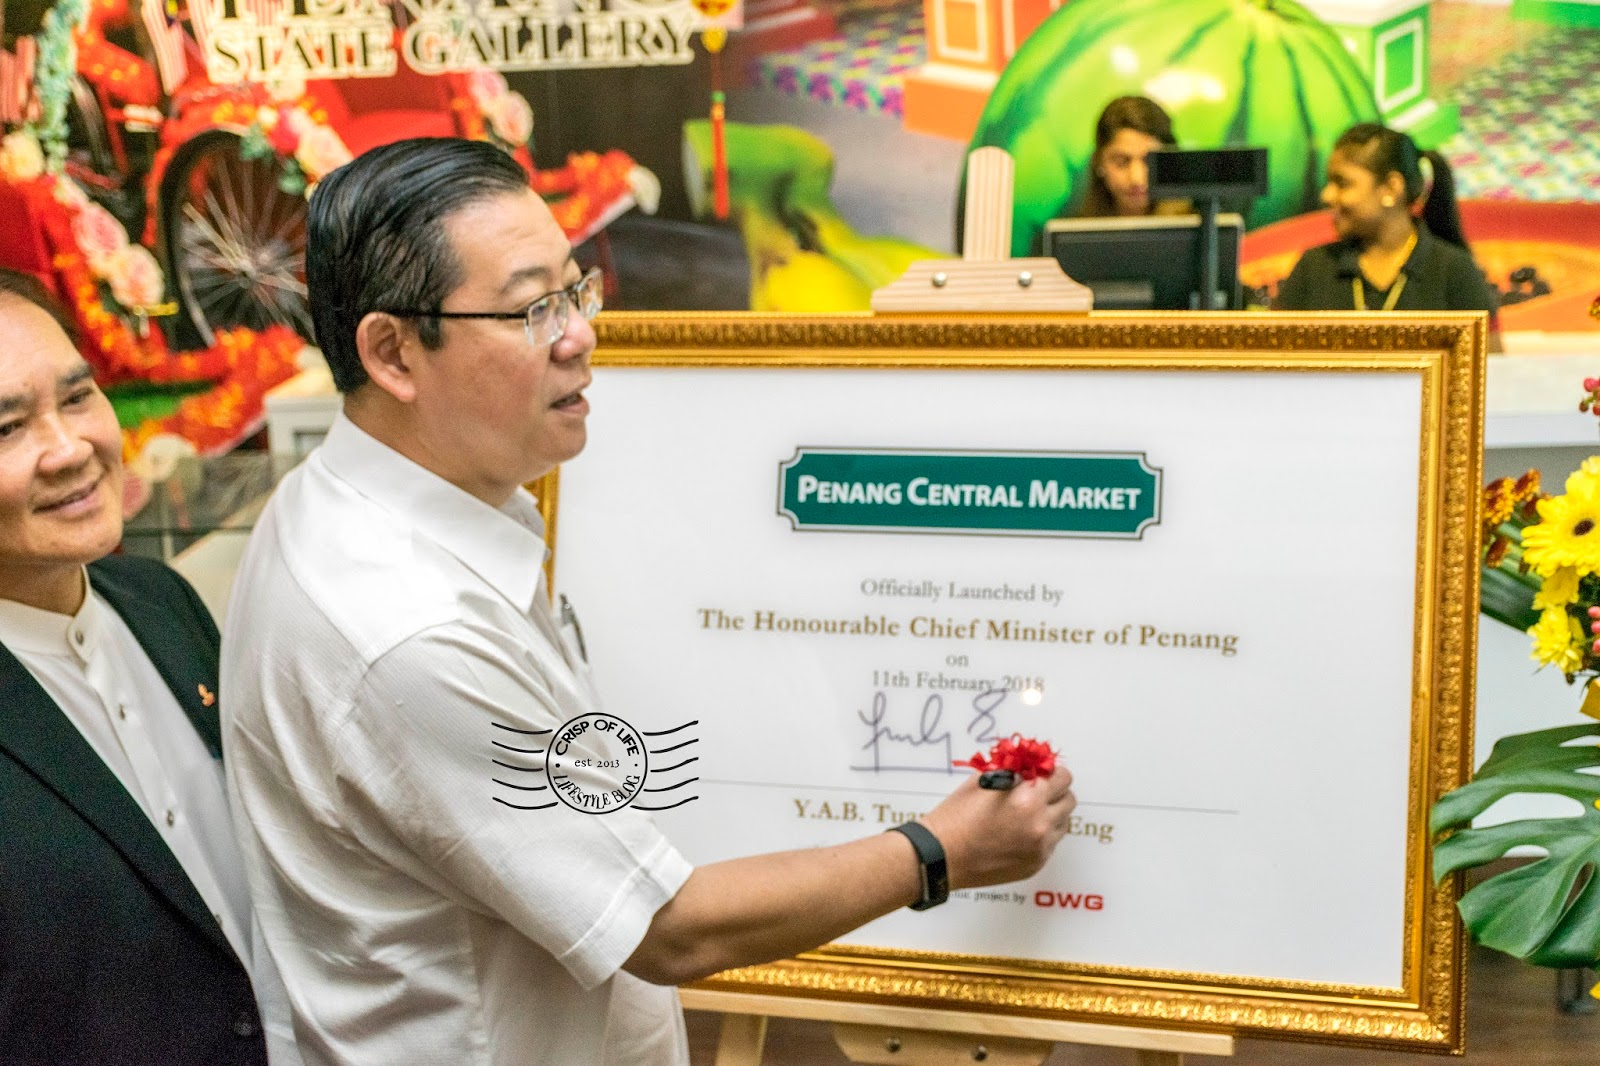 Launching of Boutique Aquarium and Penang Central Market @ The Top, Komtar Penang